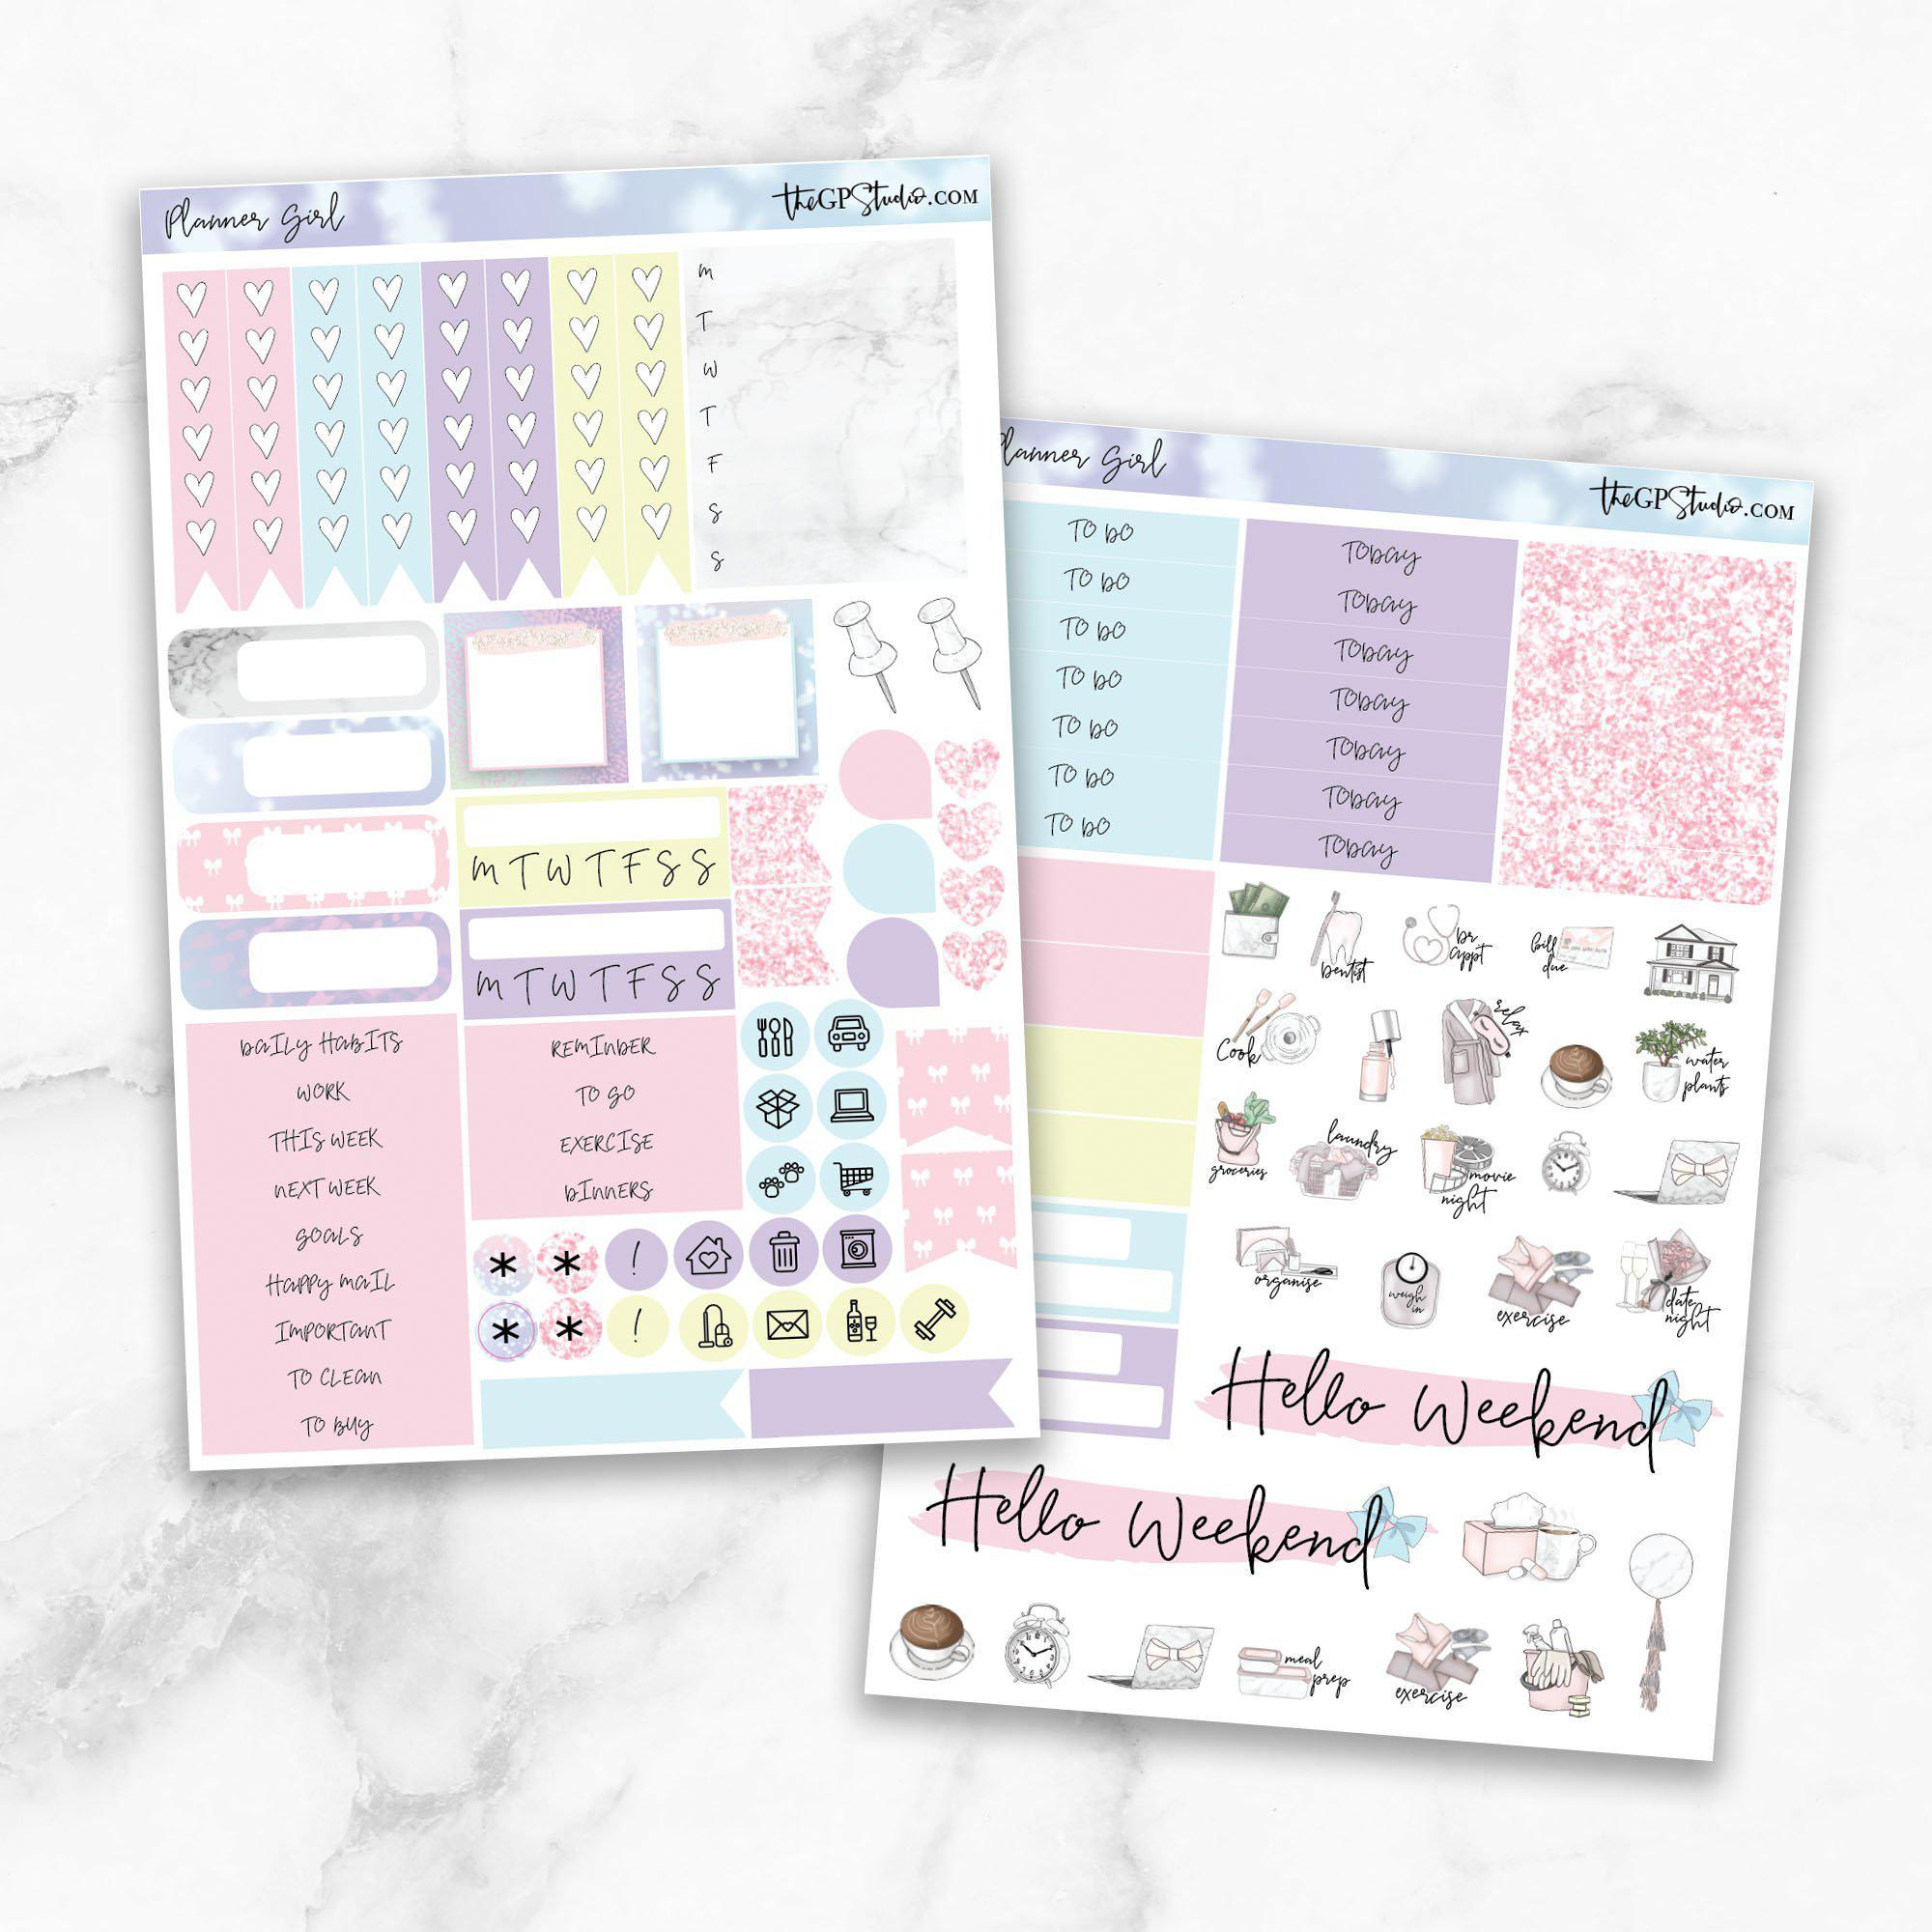 PLANNER GIRL Functional Planner Sticker Kit-The GP Studio